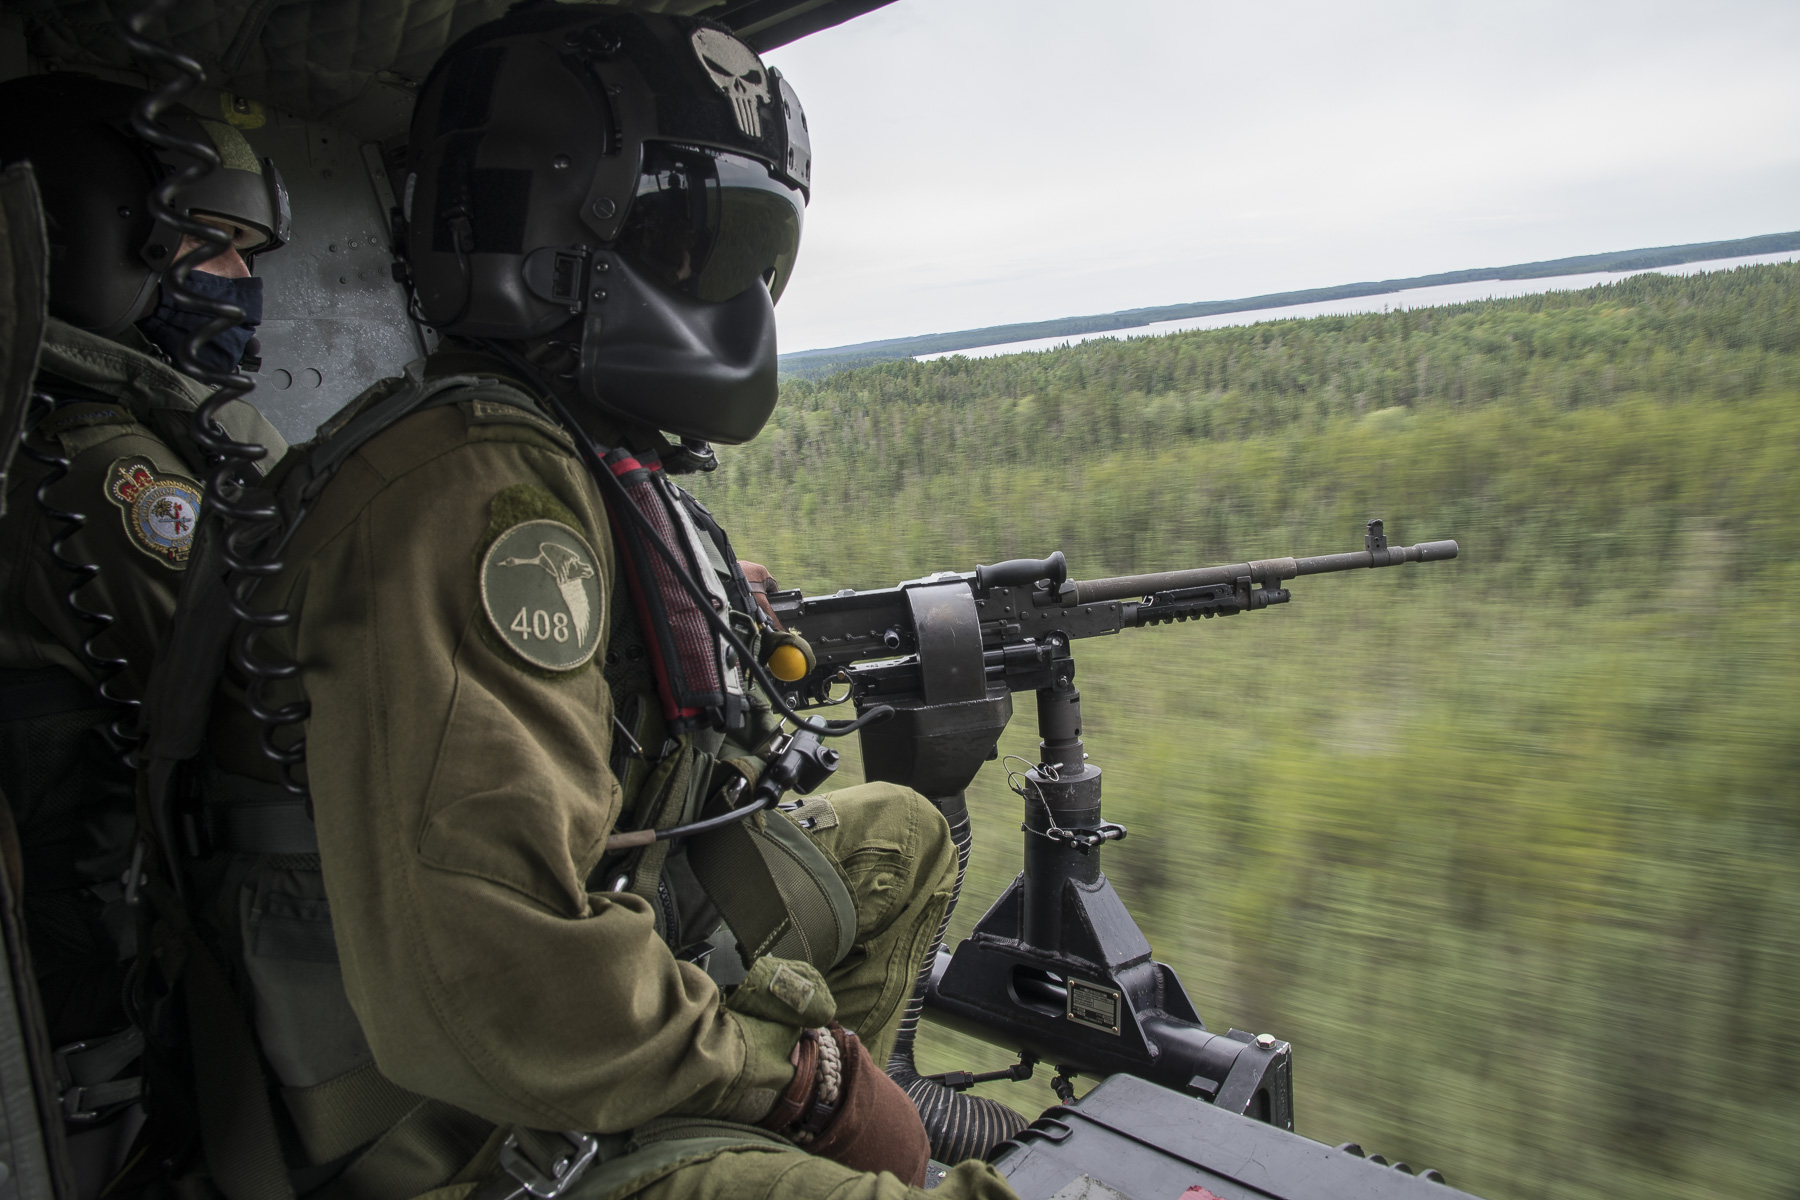 Two men wearing green flight suits and black helmets, one of which mans a machine gun, sit at the open door of a helicopter flying over a wooded area.